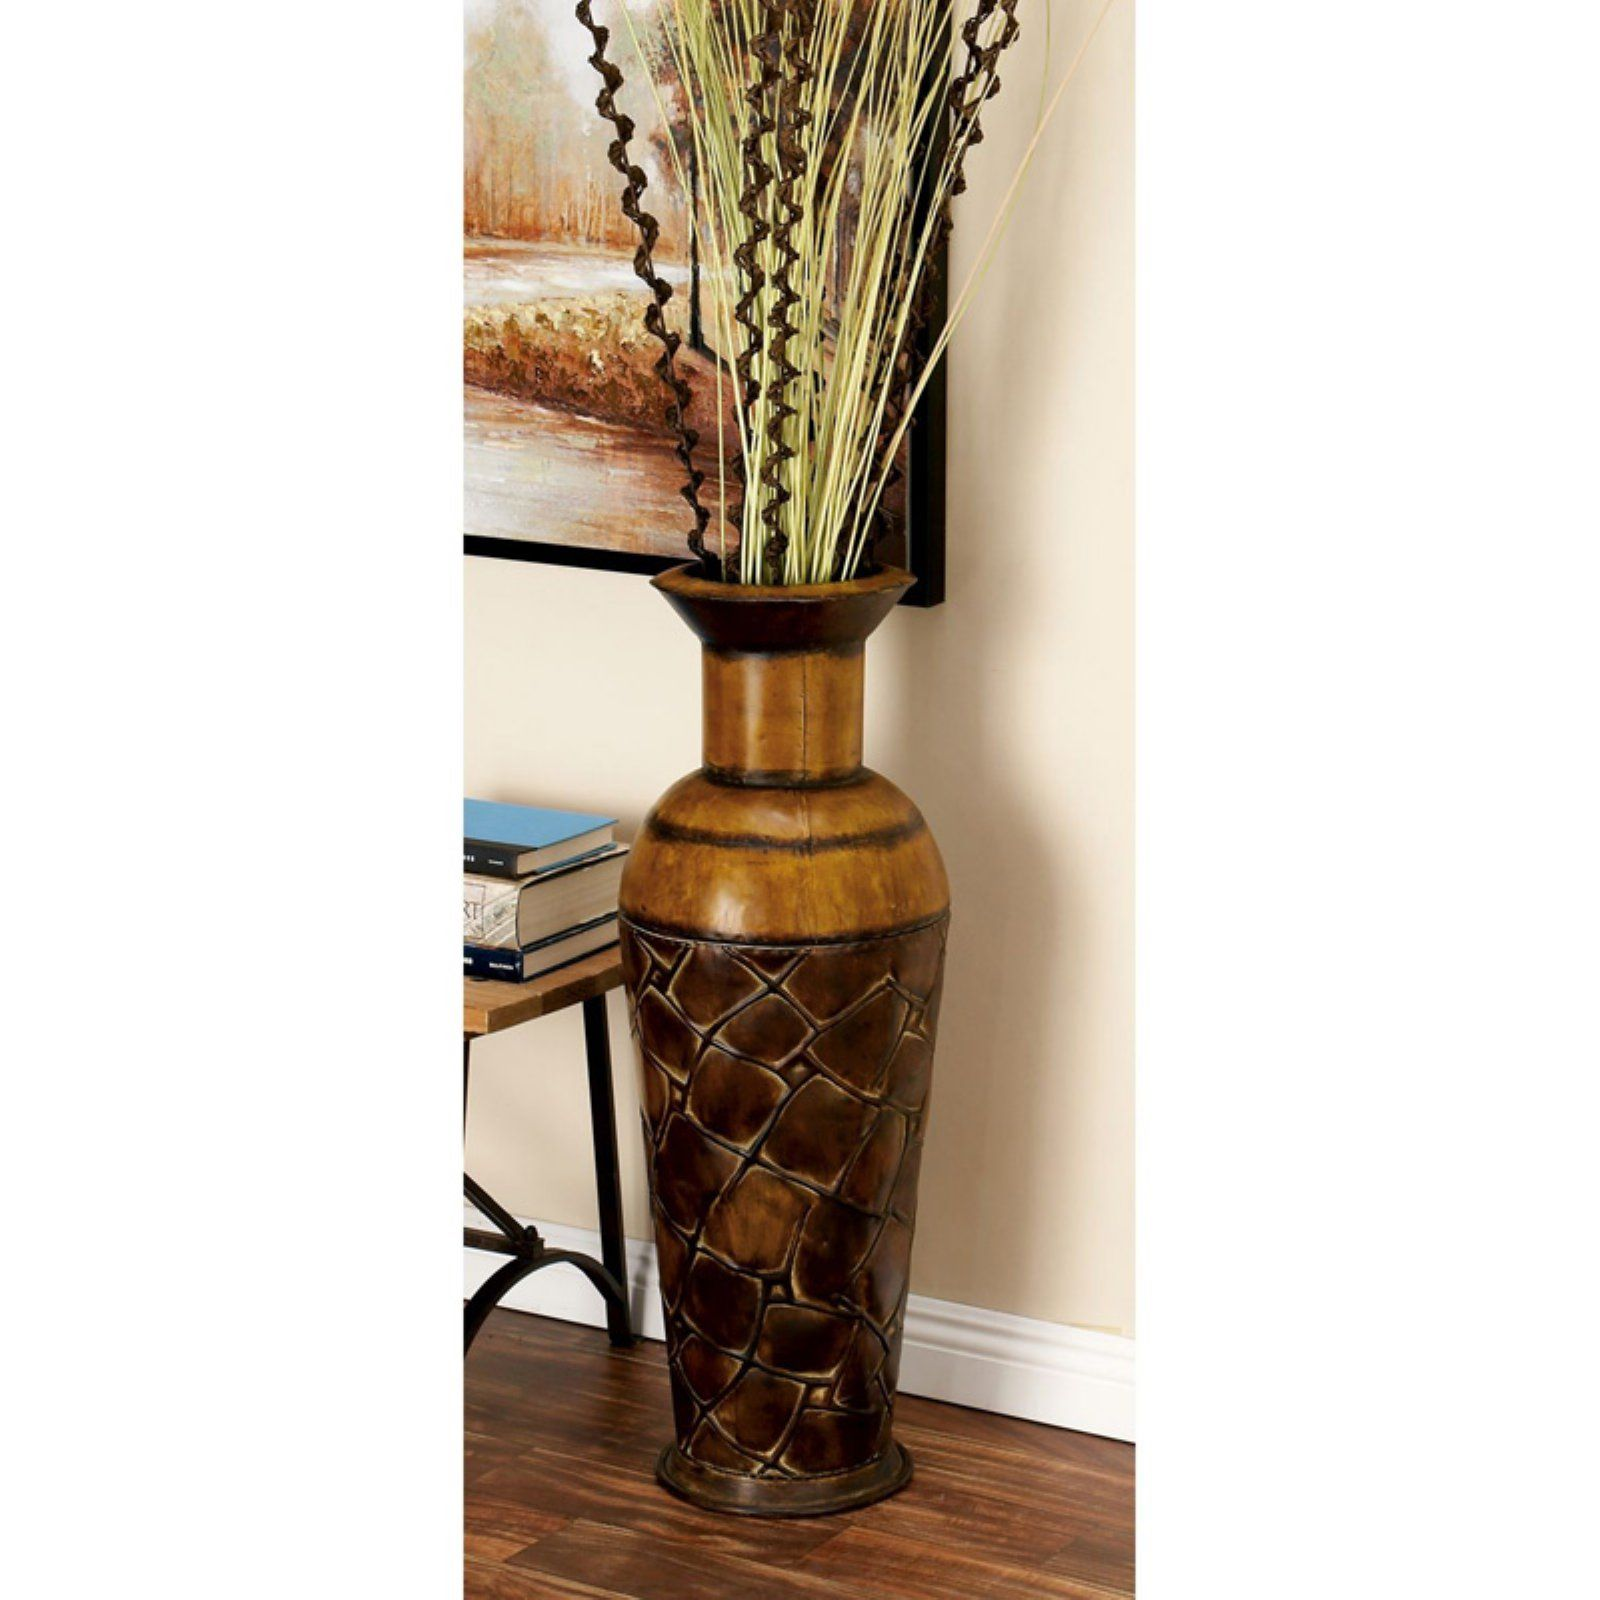 Decmode Textured Crocodile Metal Vase Set Of 3 Floor Vase